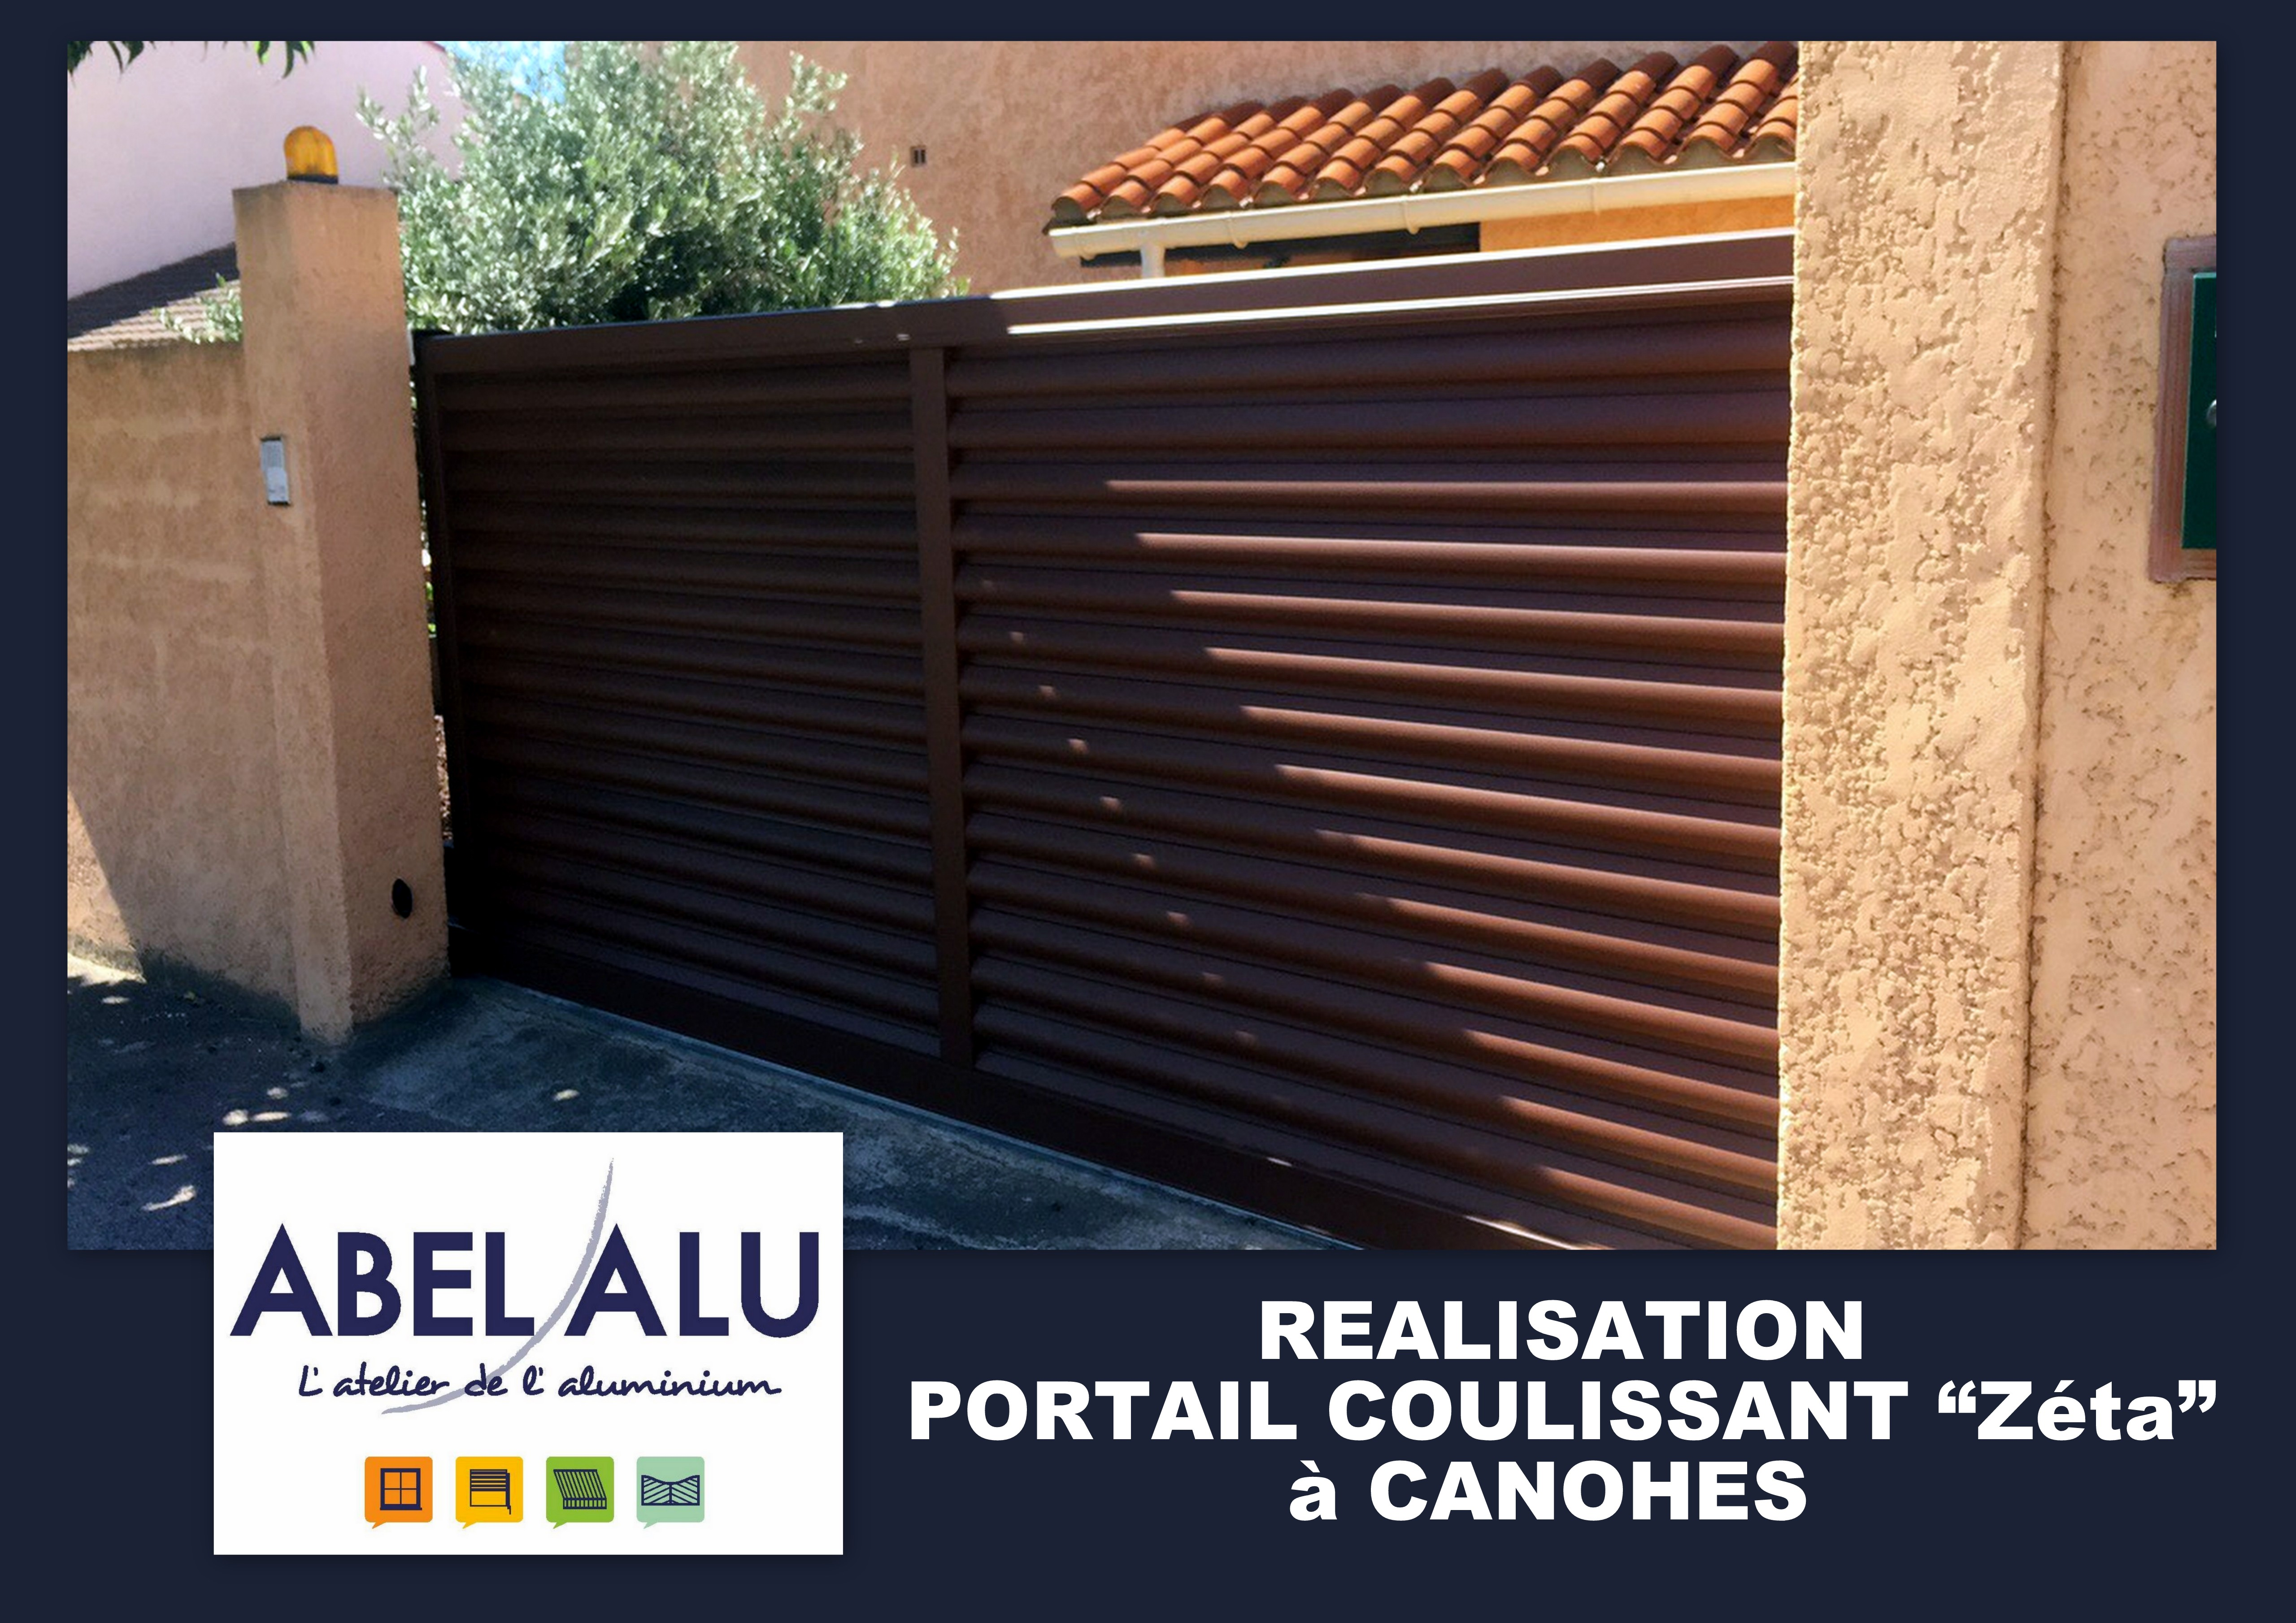 ABEL ALU - PORTAIL COULISSANT - CANOHES